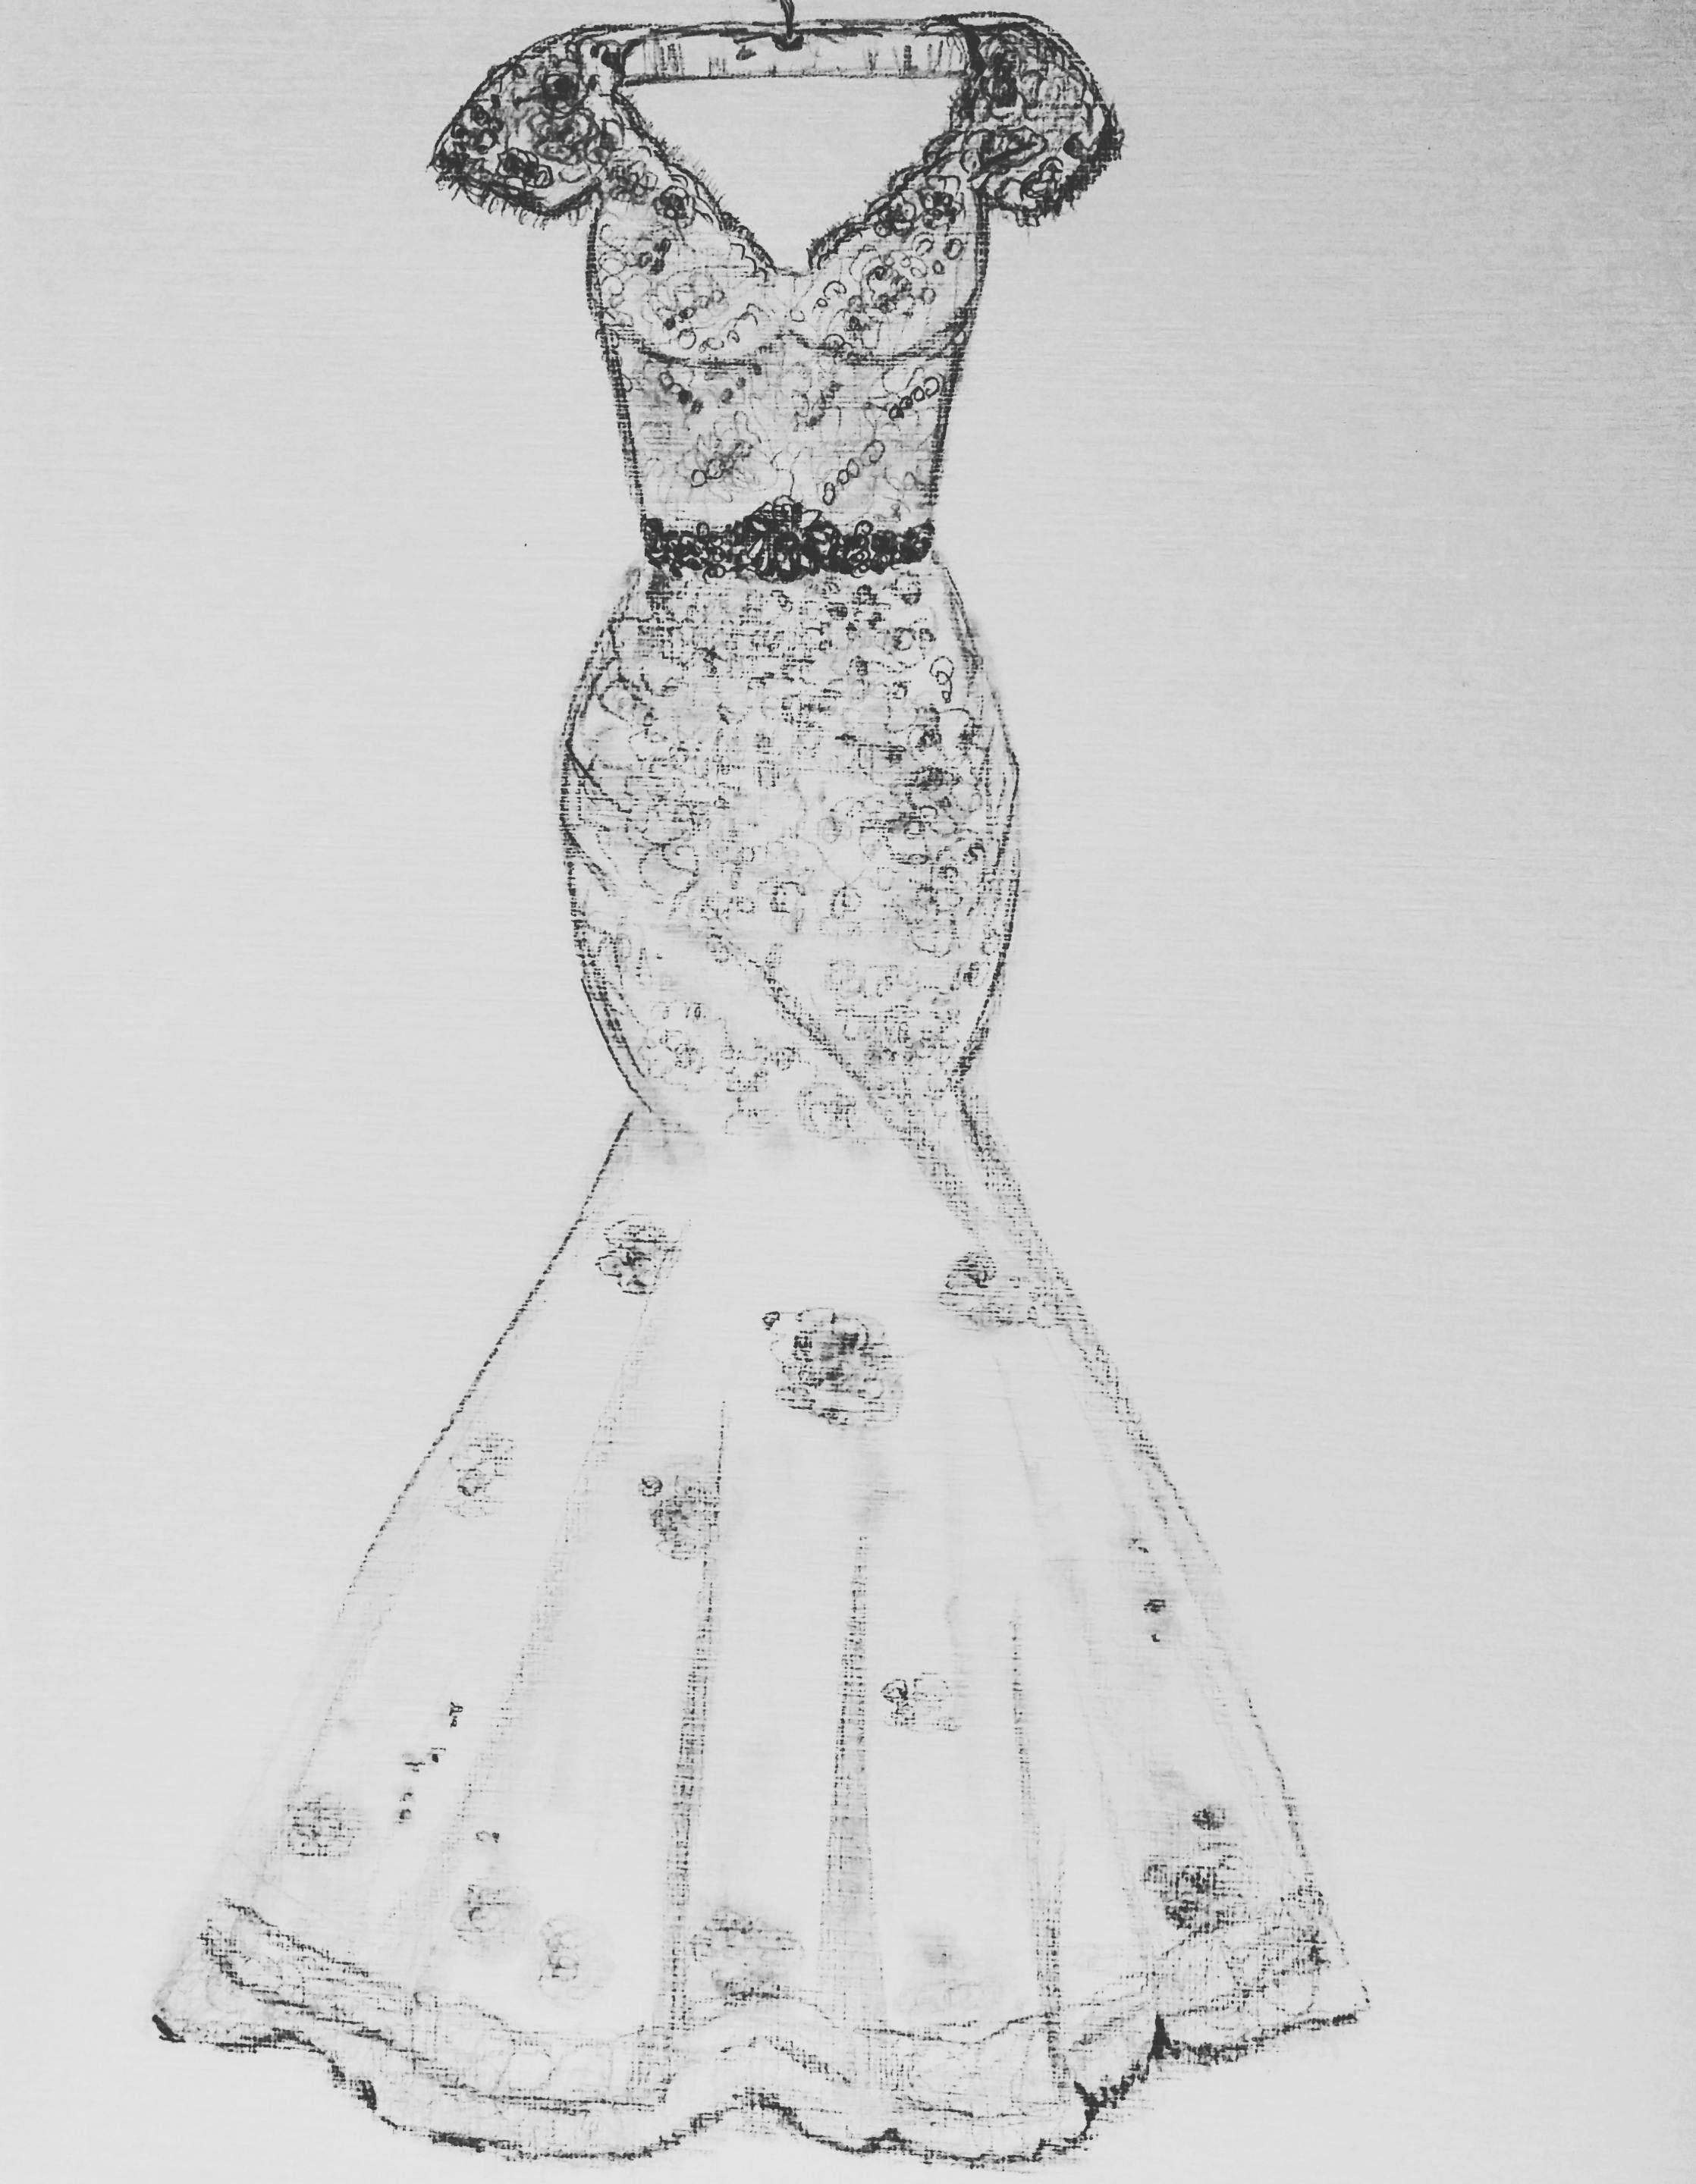 Wedding Dress Sketch Commission Illustration 1st Anniversary Custom Gift Wedding Dress Sketch Bridal Gift Dress Sketch From Photo Wedding Dress Sketches Custom Wedding Dress Sketch Wedding Dress Drawings